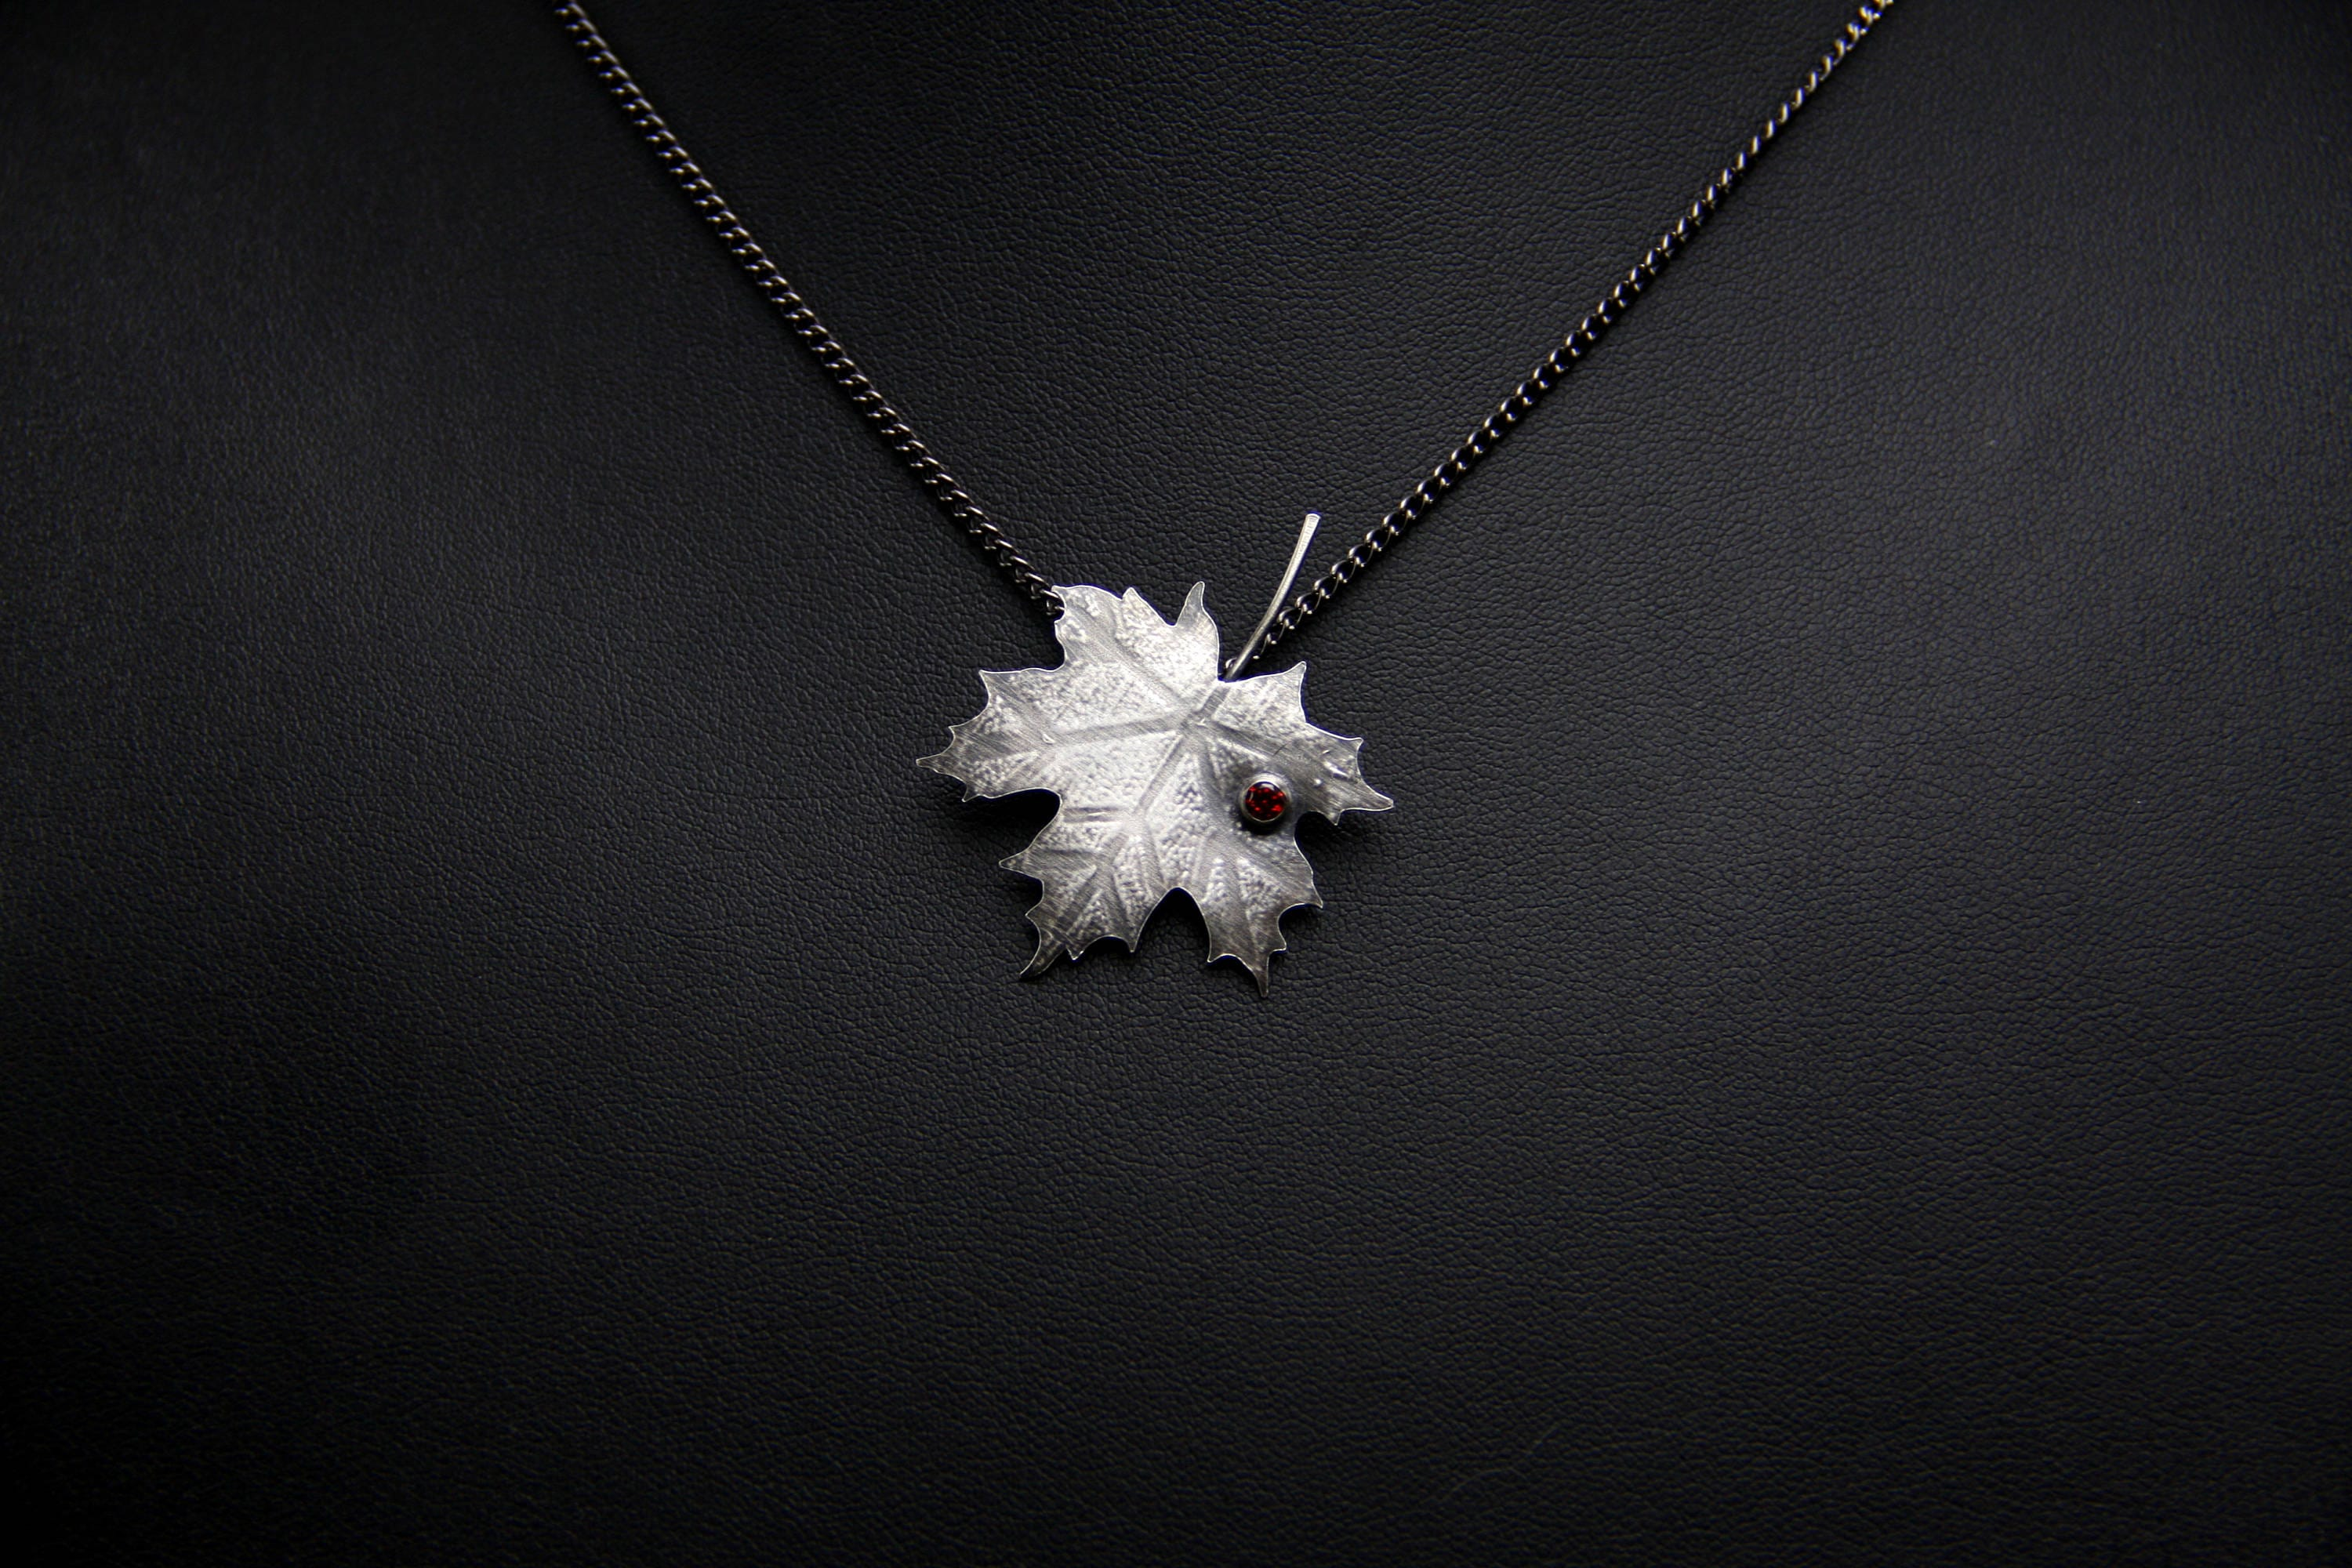 leaf us pave pav pendant with chain pendants cubic metalsmiths gemstone products maple inch sterling